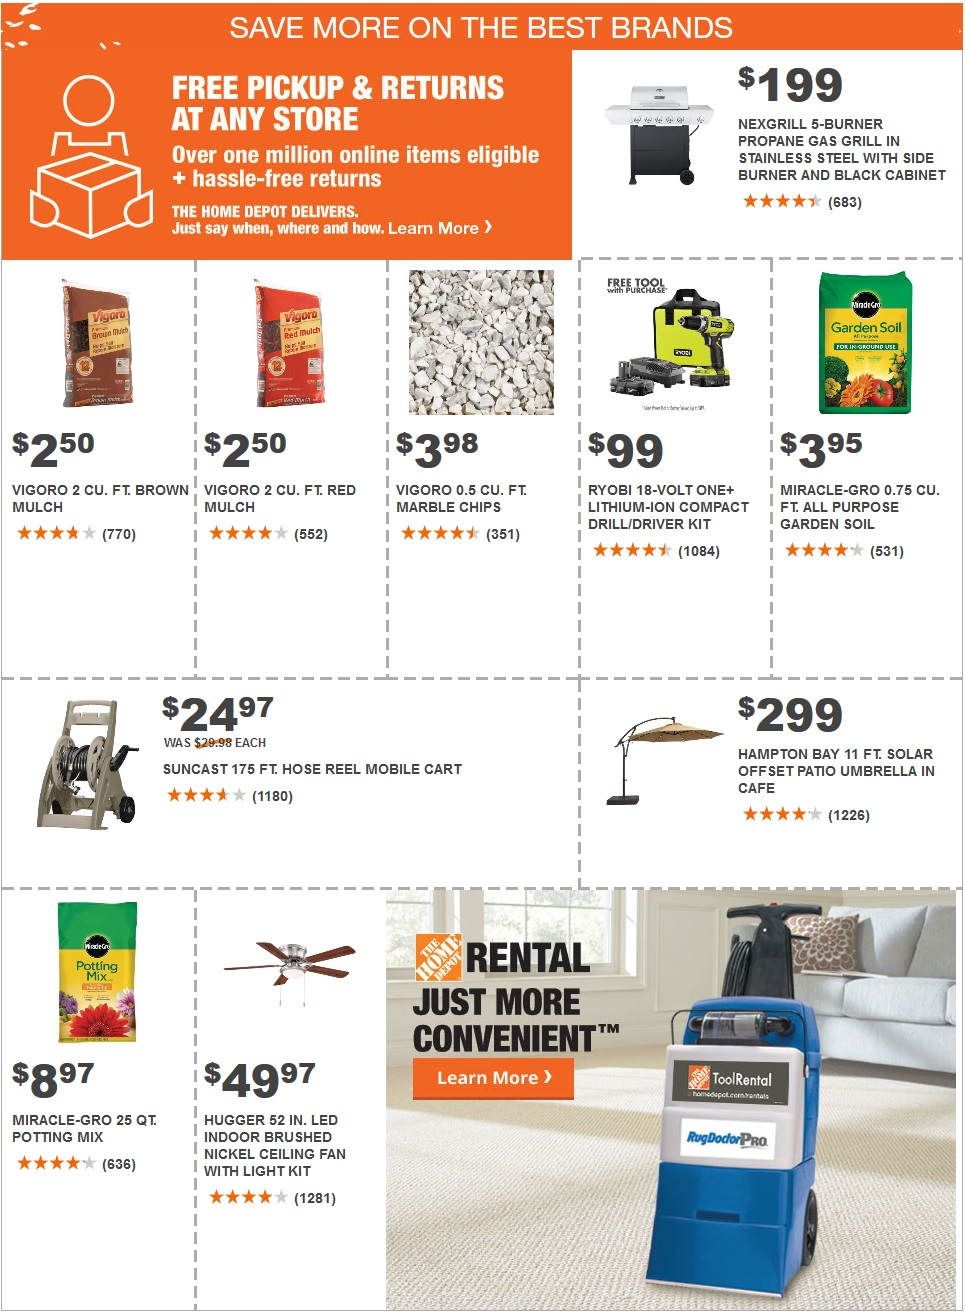 Attractive Home Depot Atlanta Corporate Office Phone Number ...